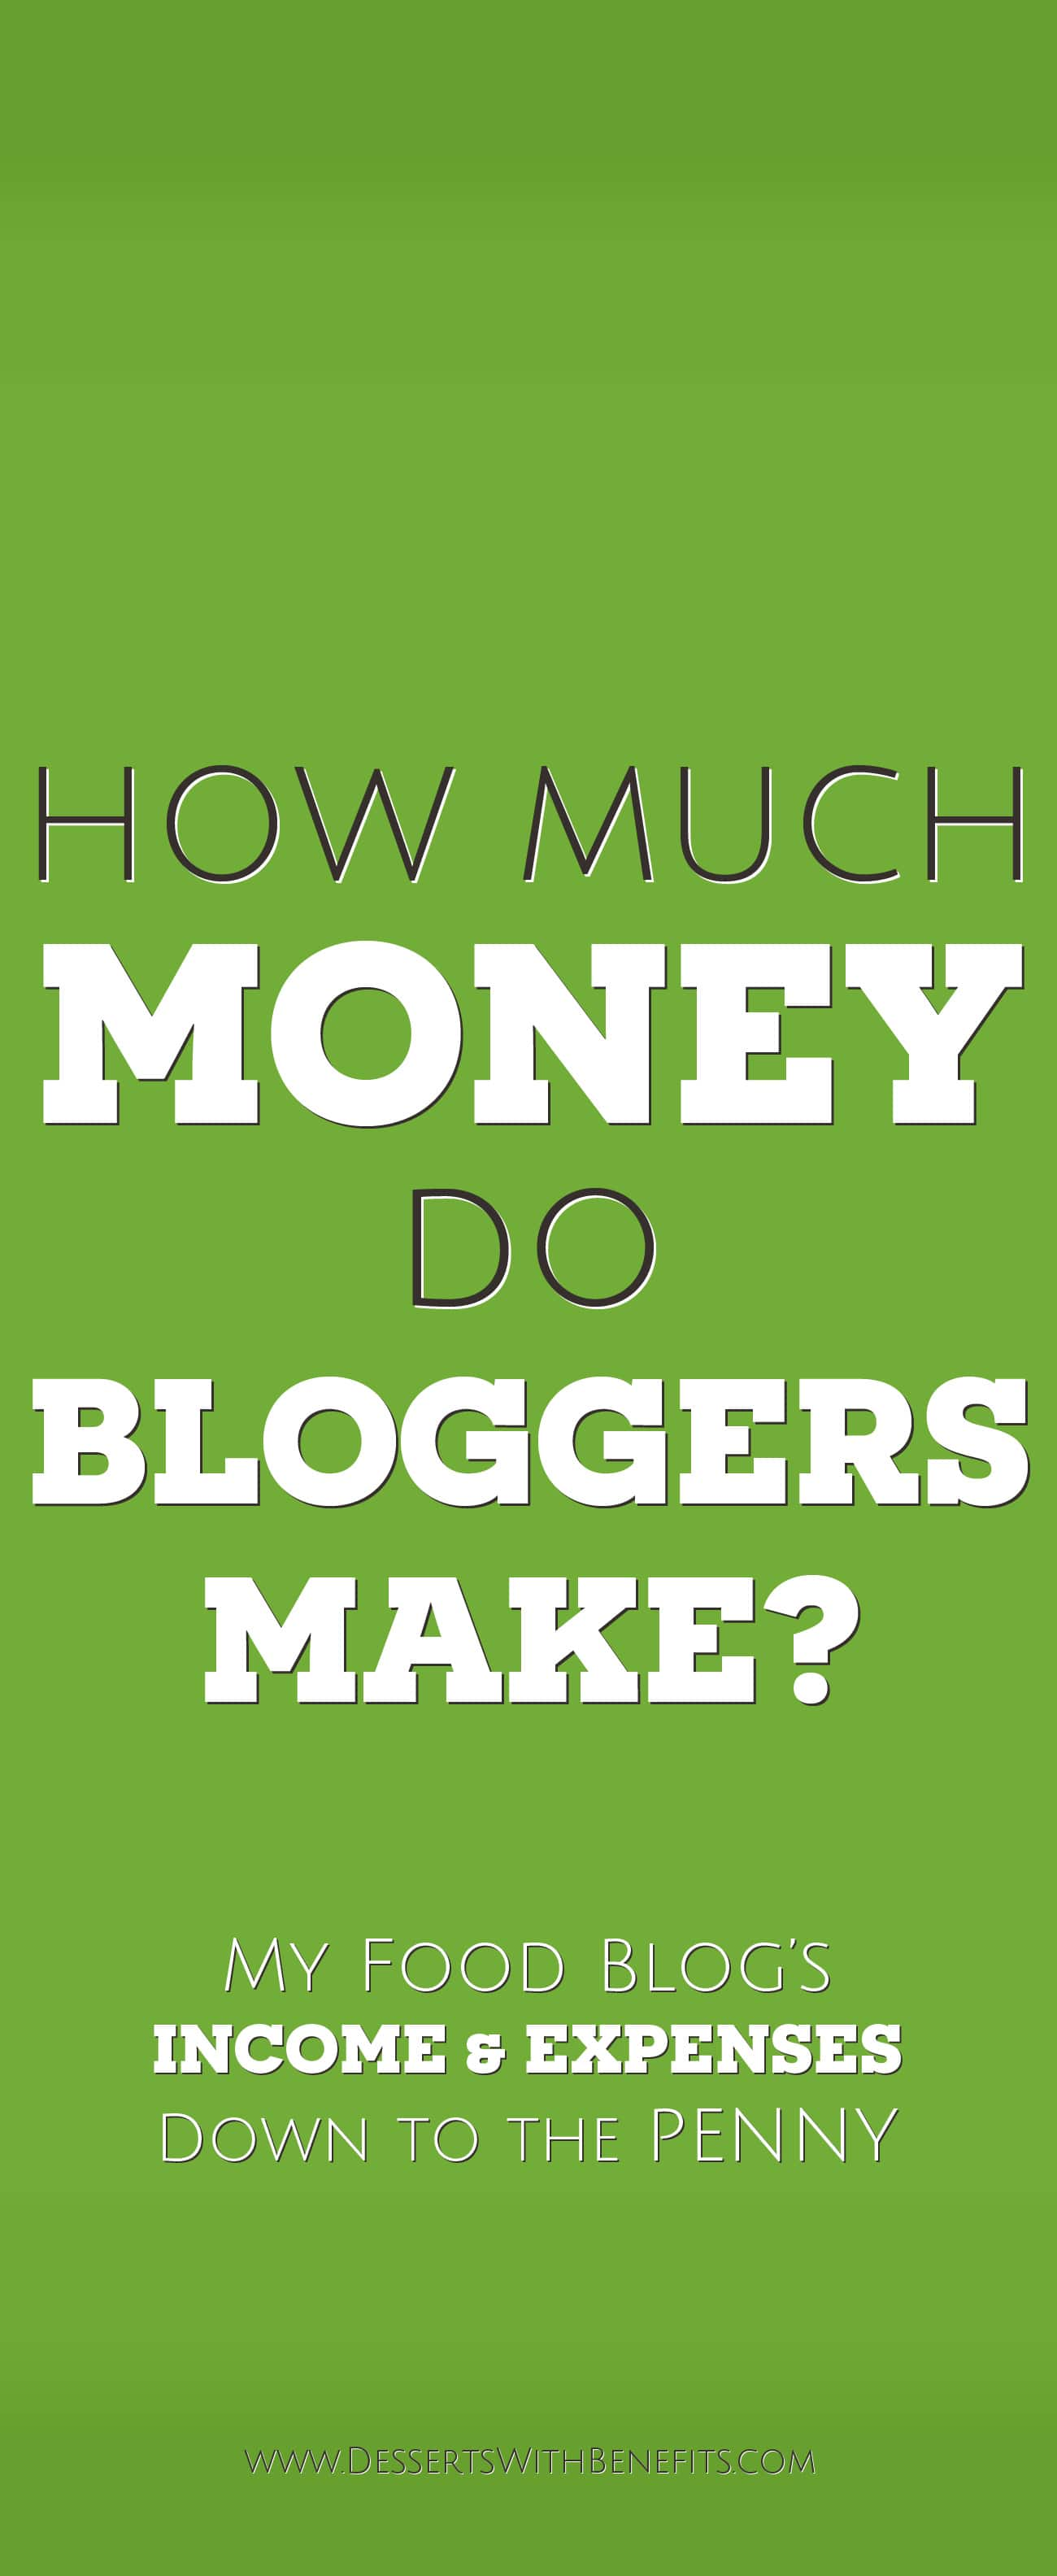 How Much Money Do Food Bloggers Make? Jessica Stier of the Desserts With Benefits Blog